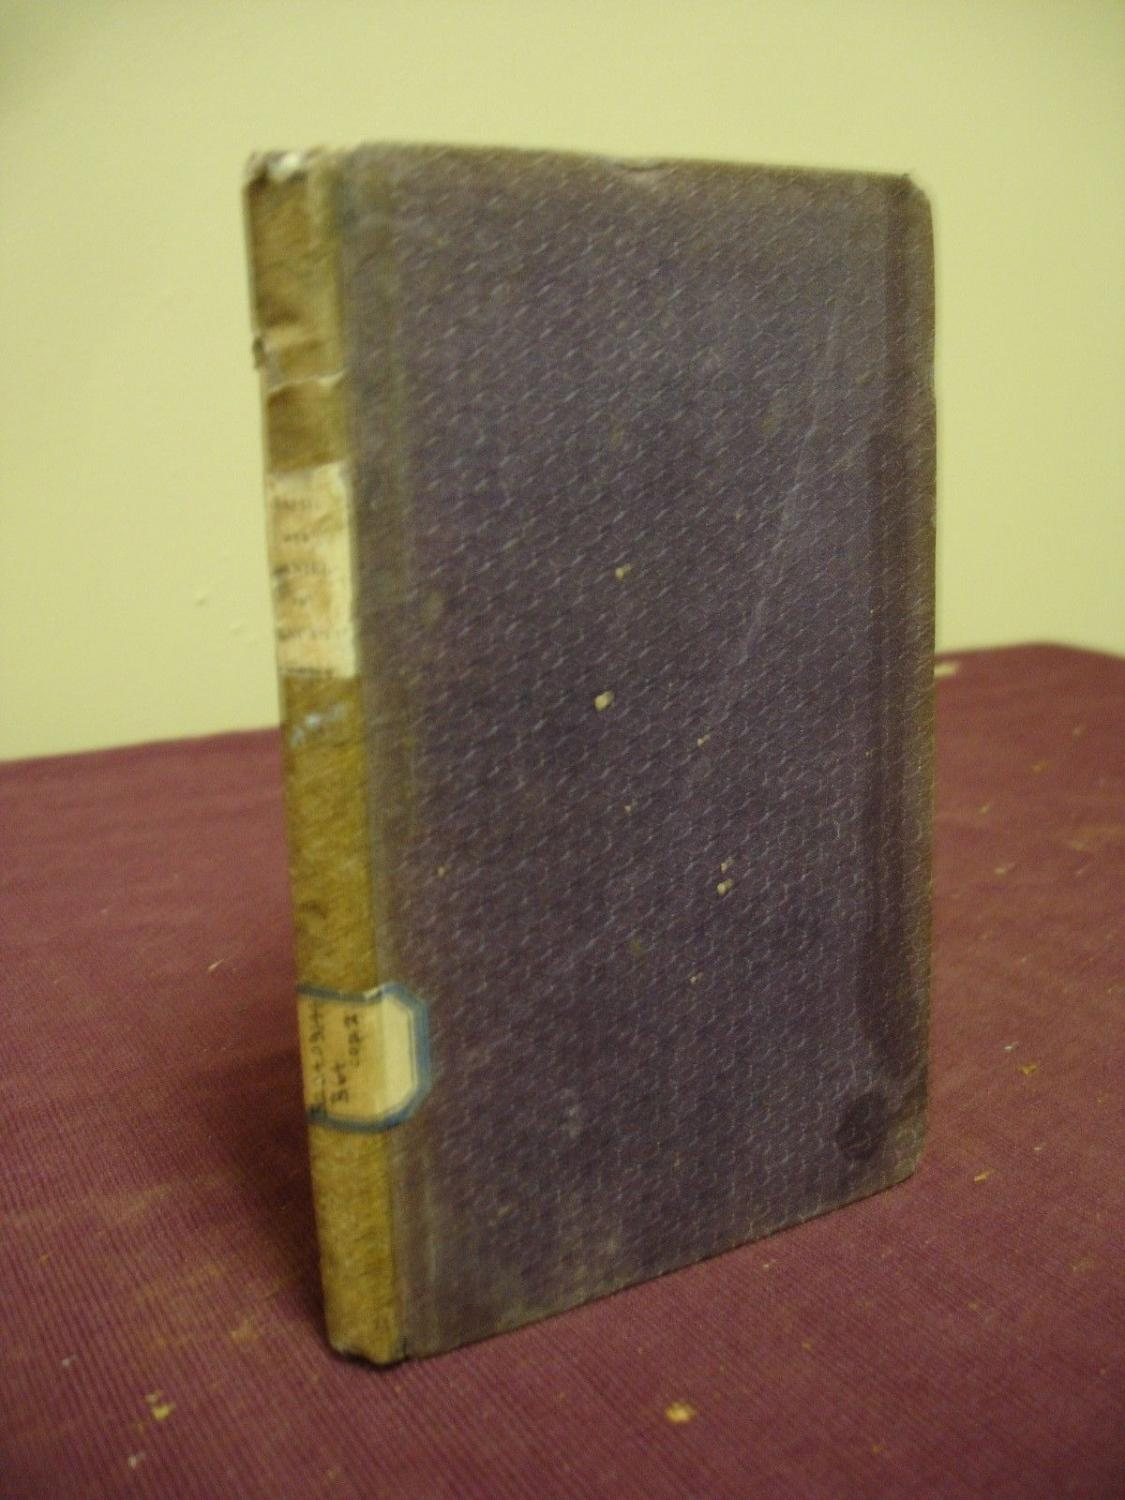 1842 Bengali Translation of the Books of Isaiah and Daniel - First Edition